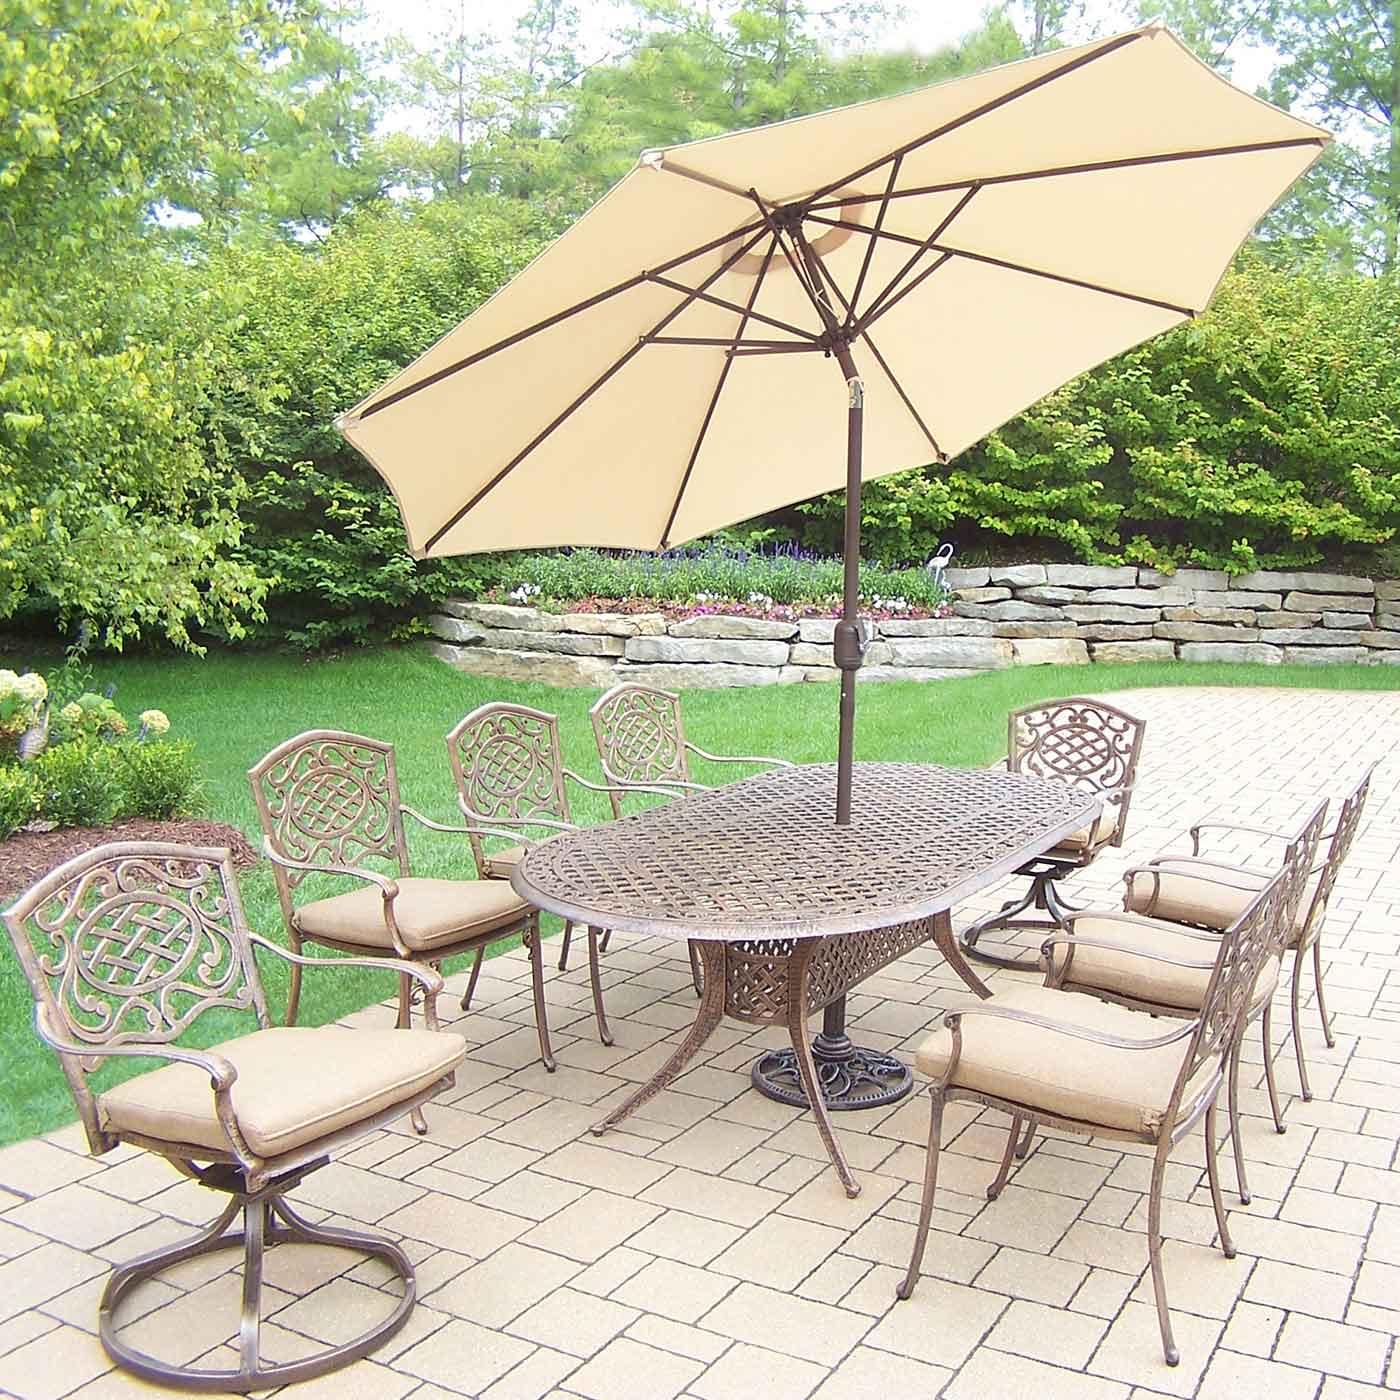 zm large base oval dining to cast woodard aluminum table delphi zoom hover patio